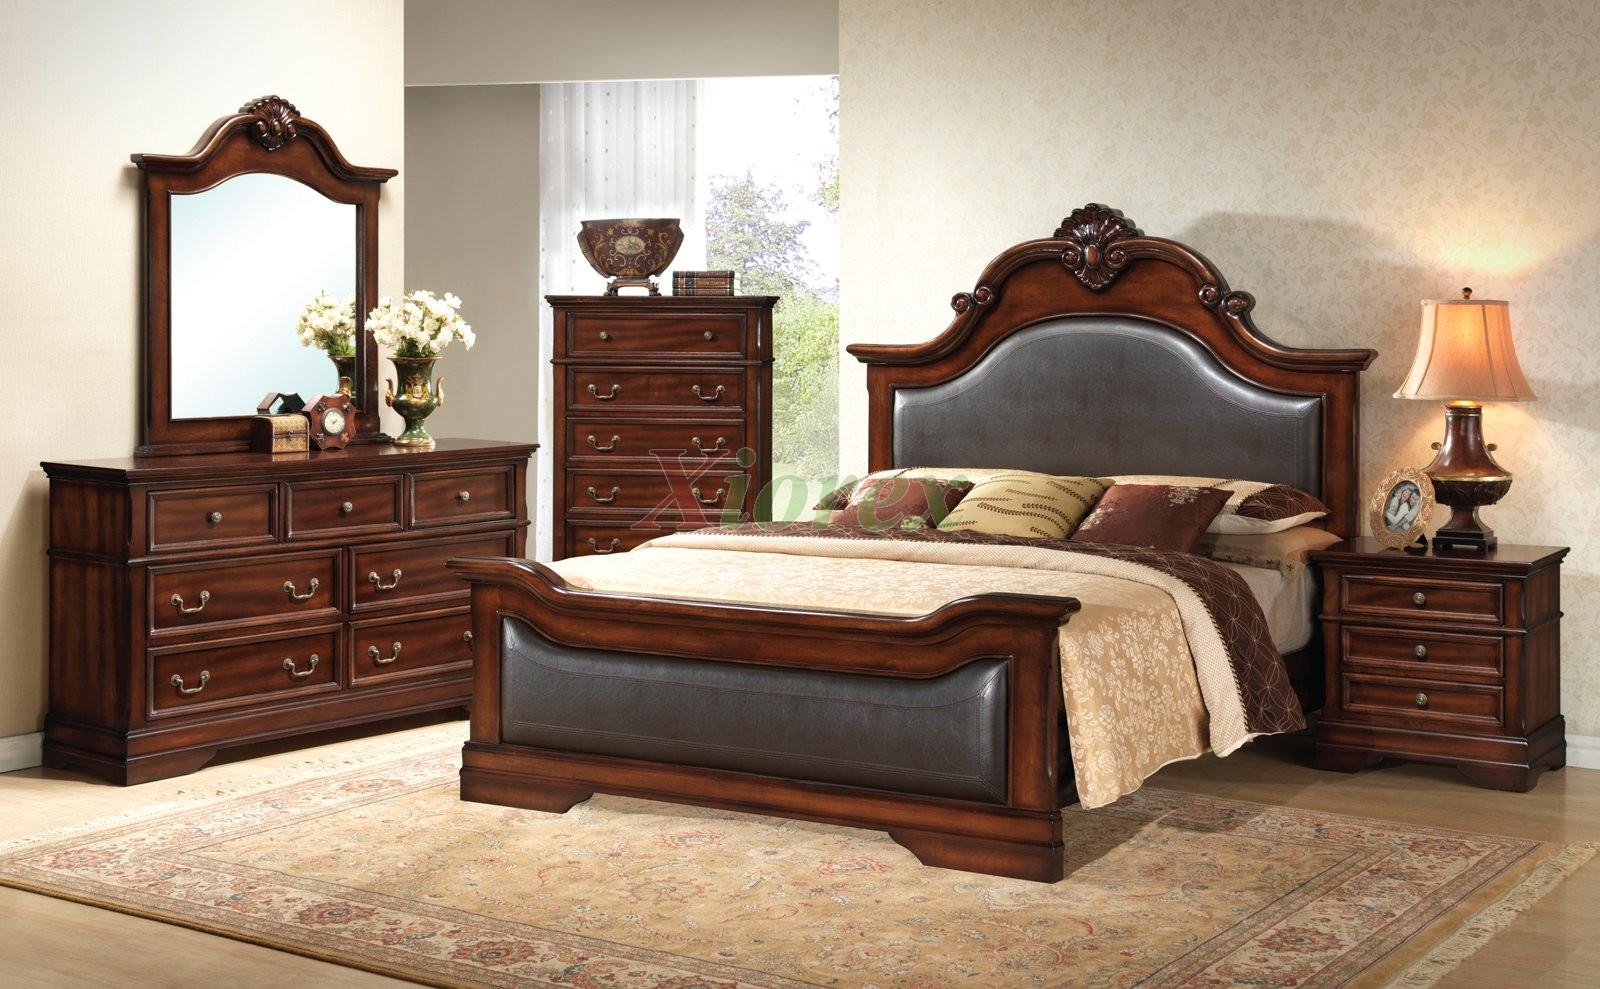 bedroom furniture set with leather headboard and footboard 134 xiorex